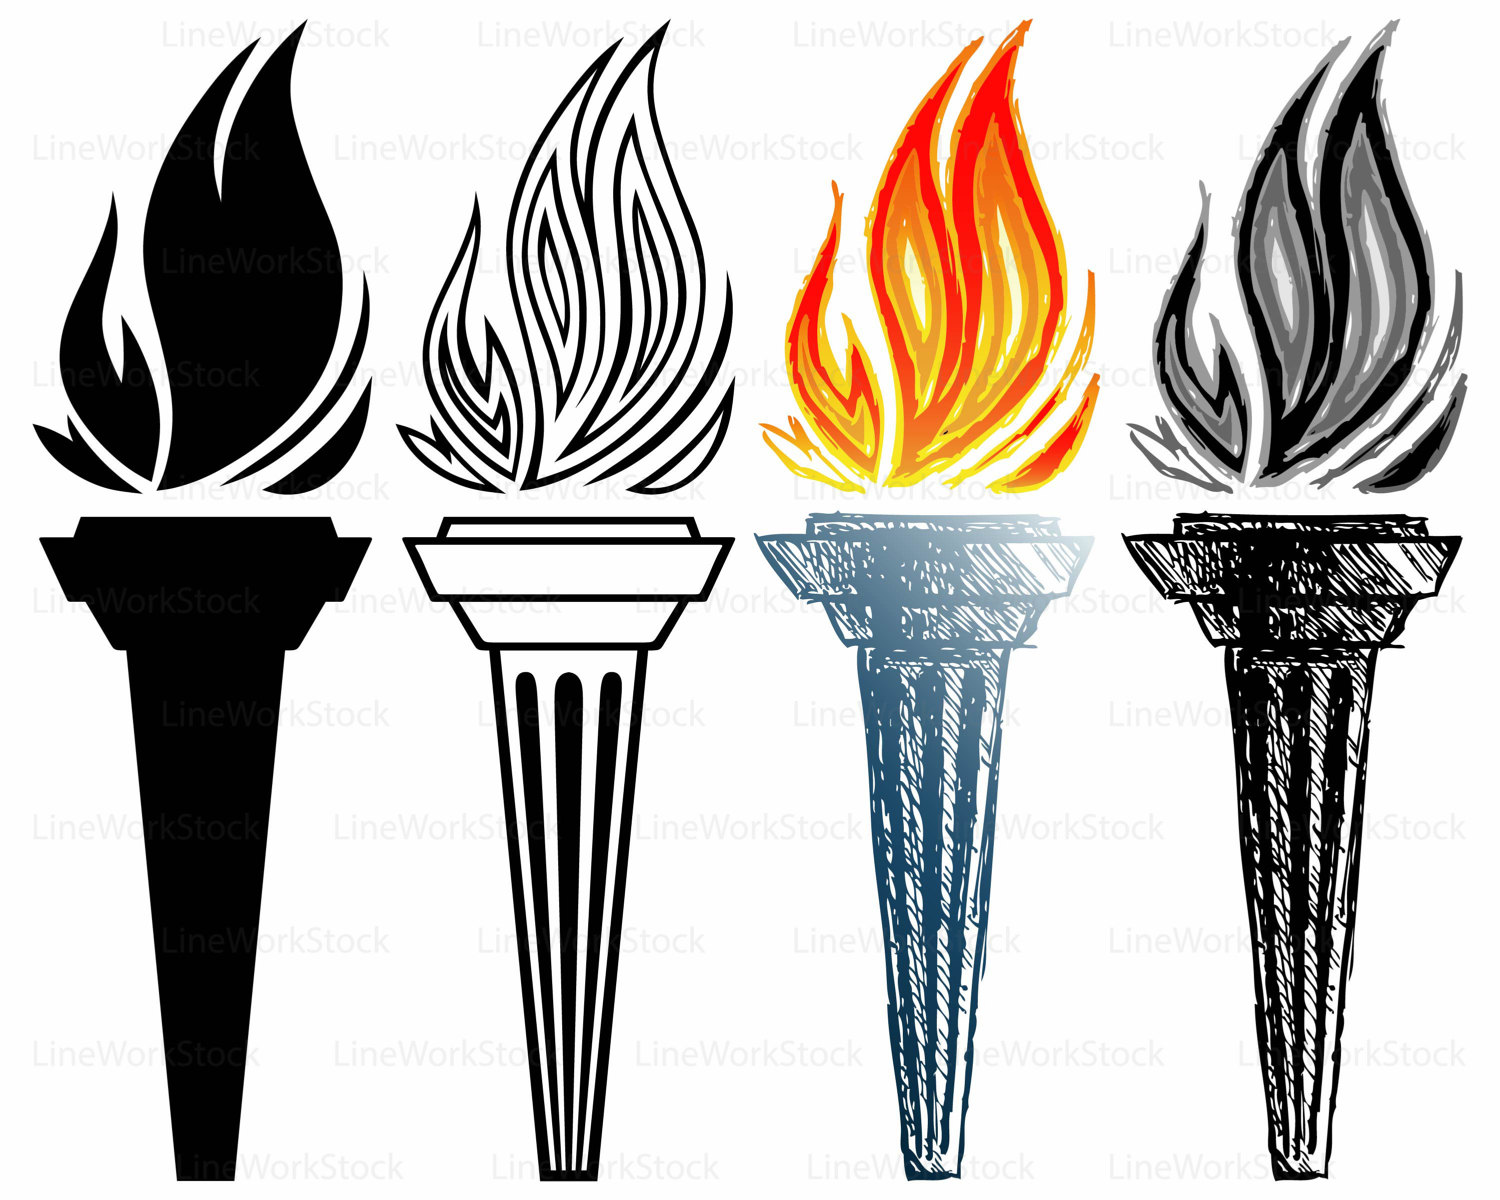 Torch clipart ancient, Torch ancient Transparent FREE for.